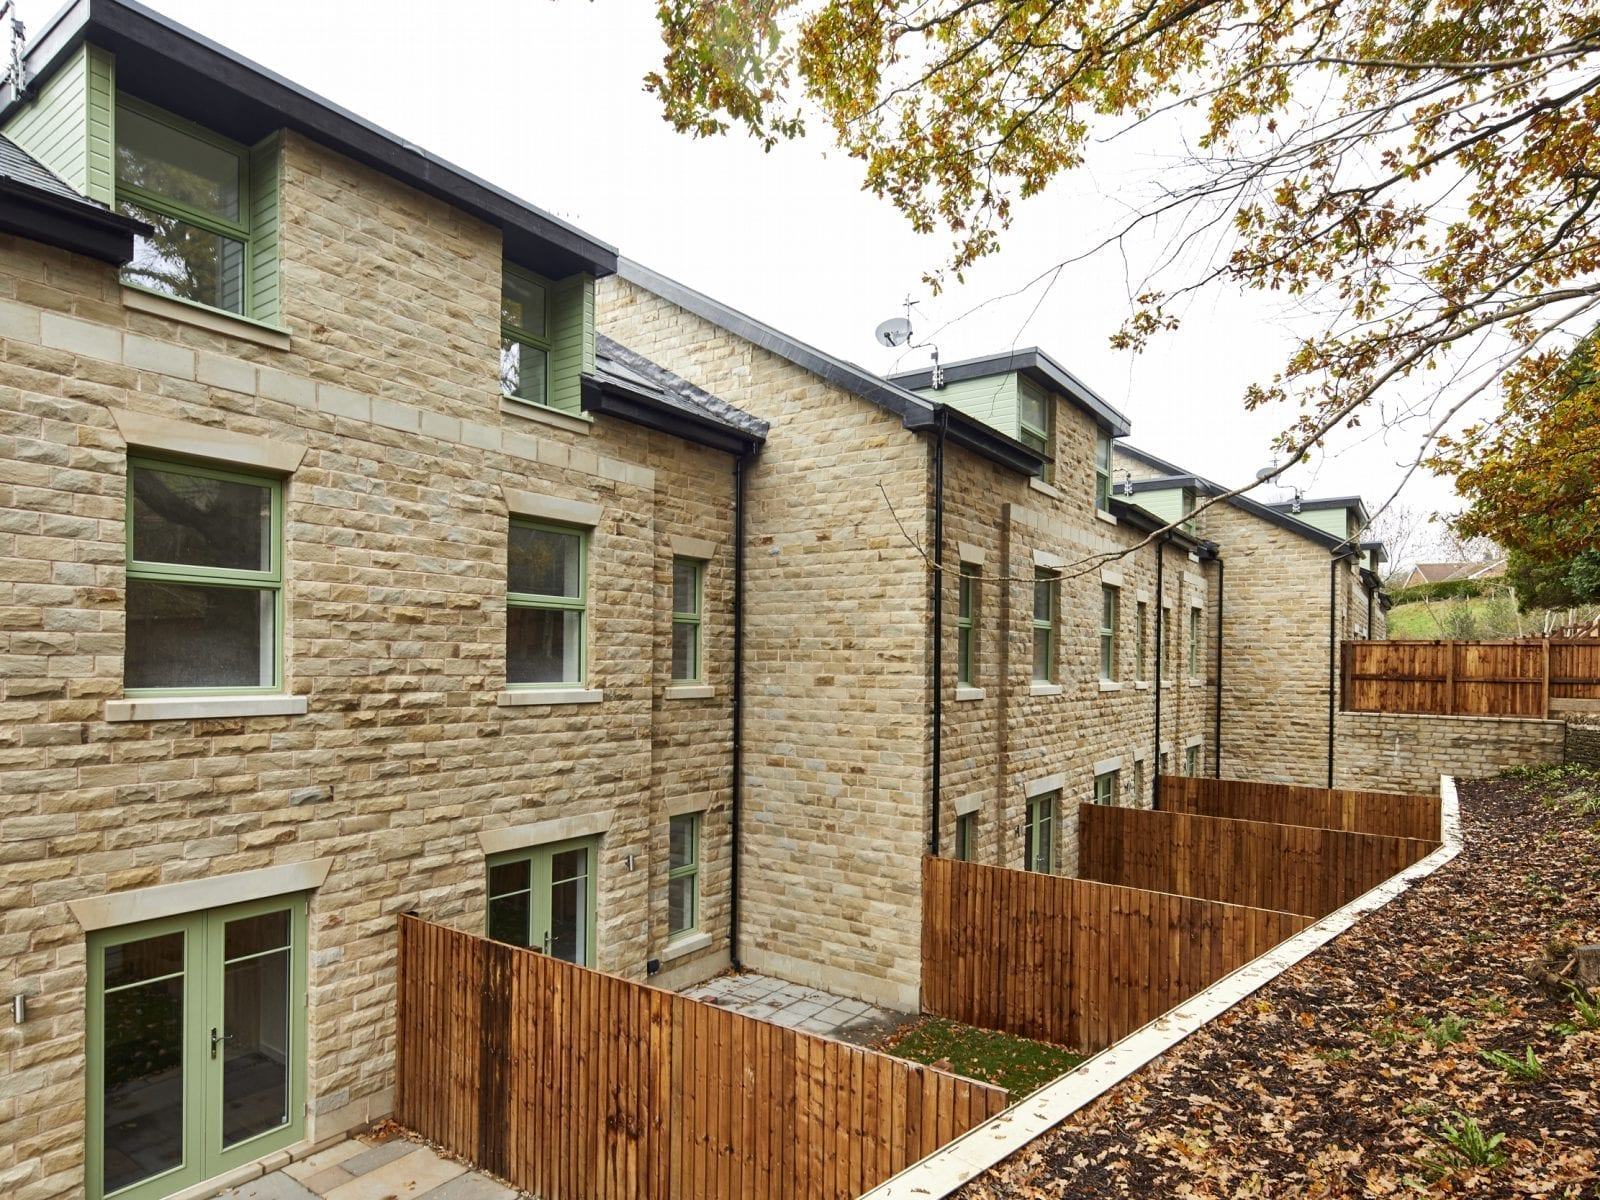 Ingersley Vale, Bollington, Macclesfield,11 townhouses and 1 detached house set in a wooded valley next to the River Dean